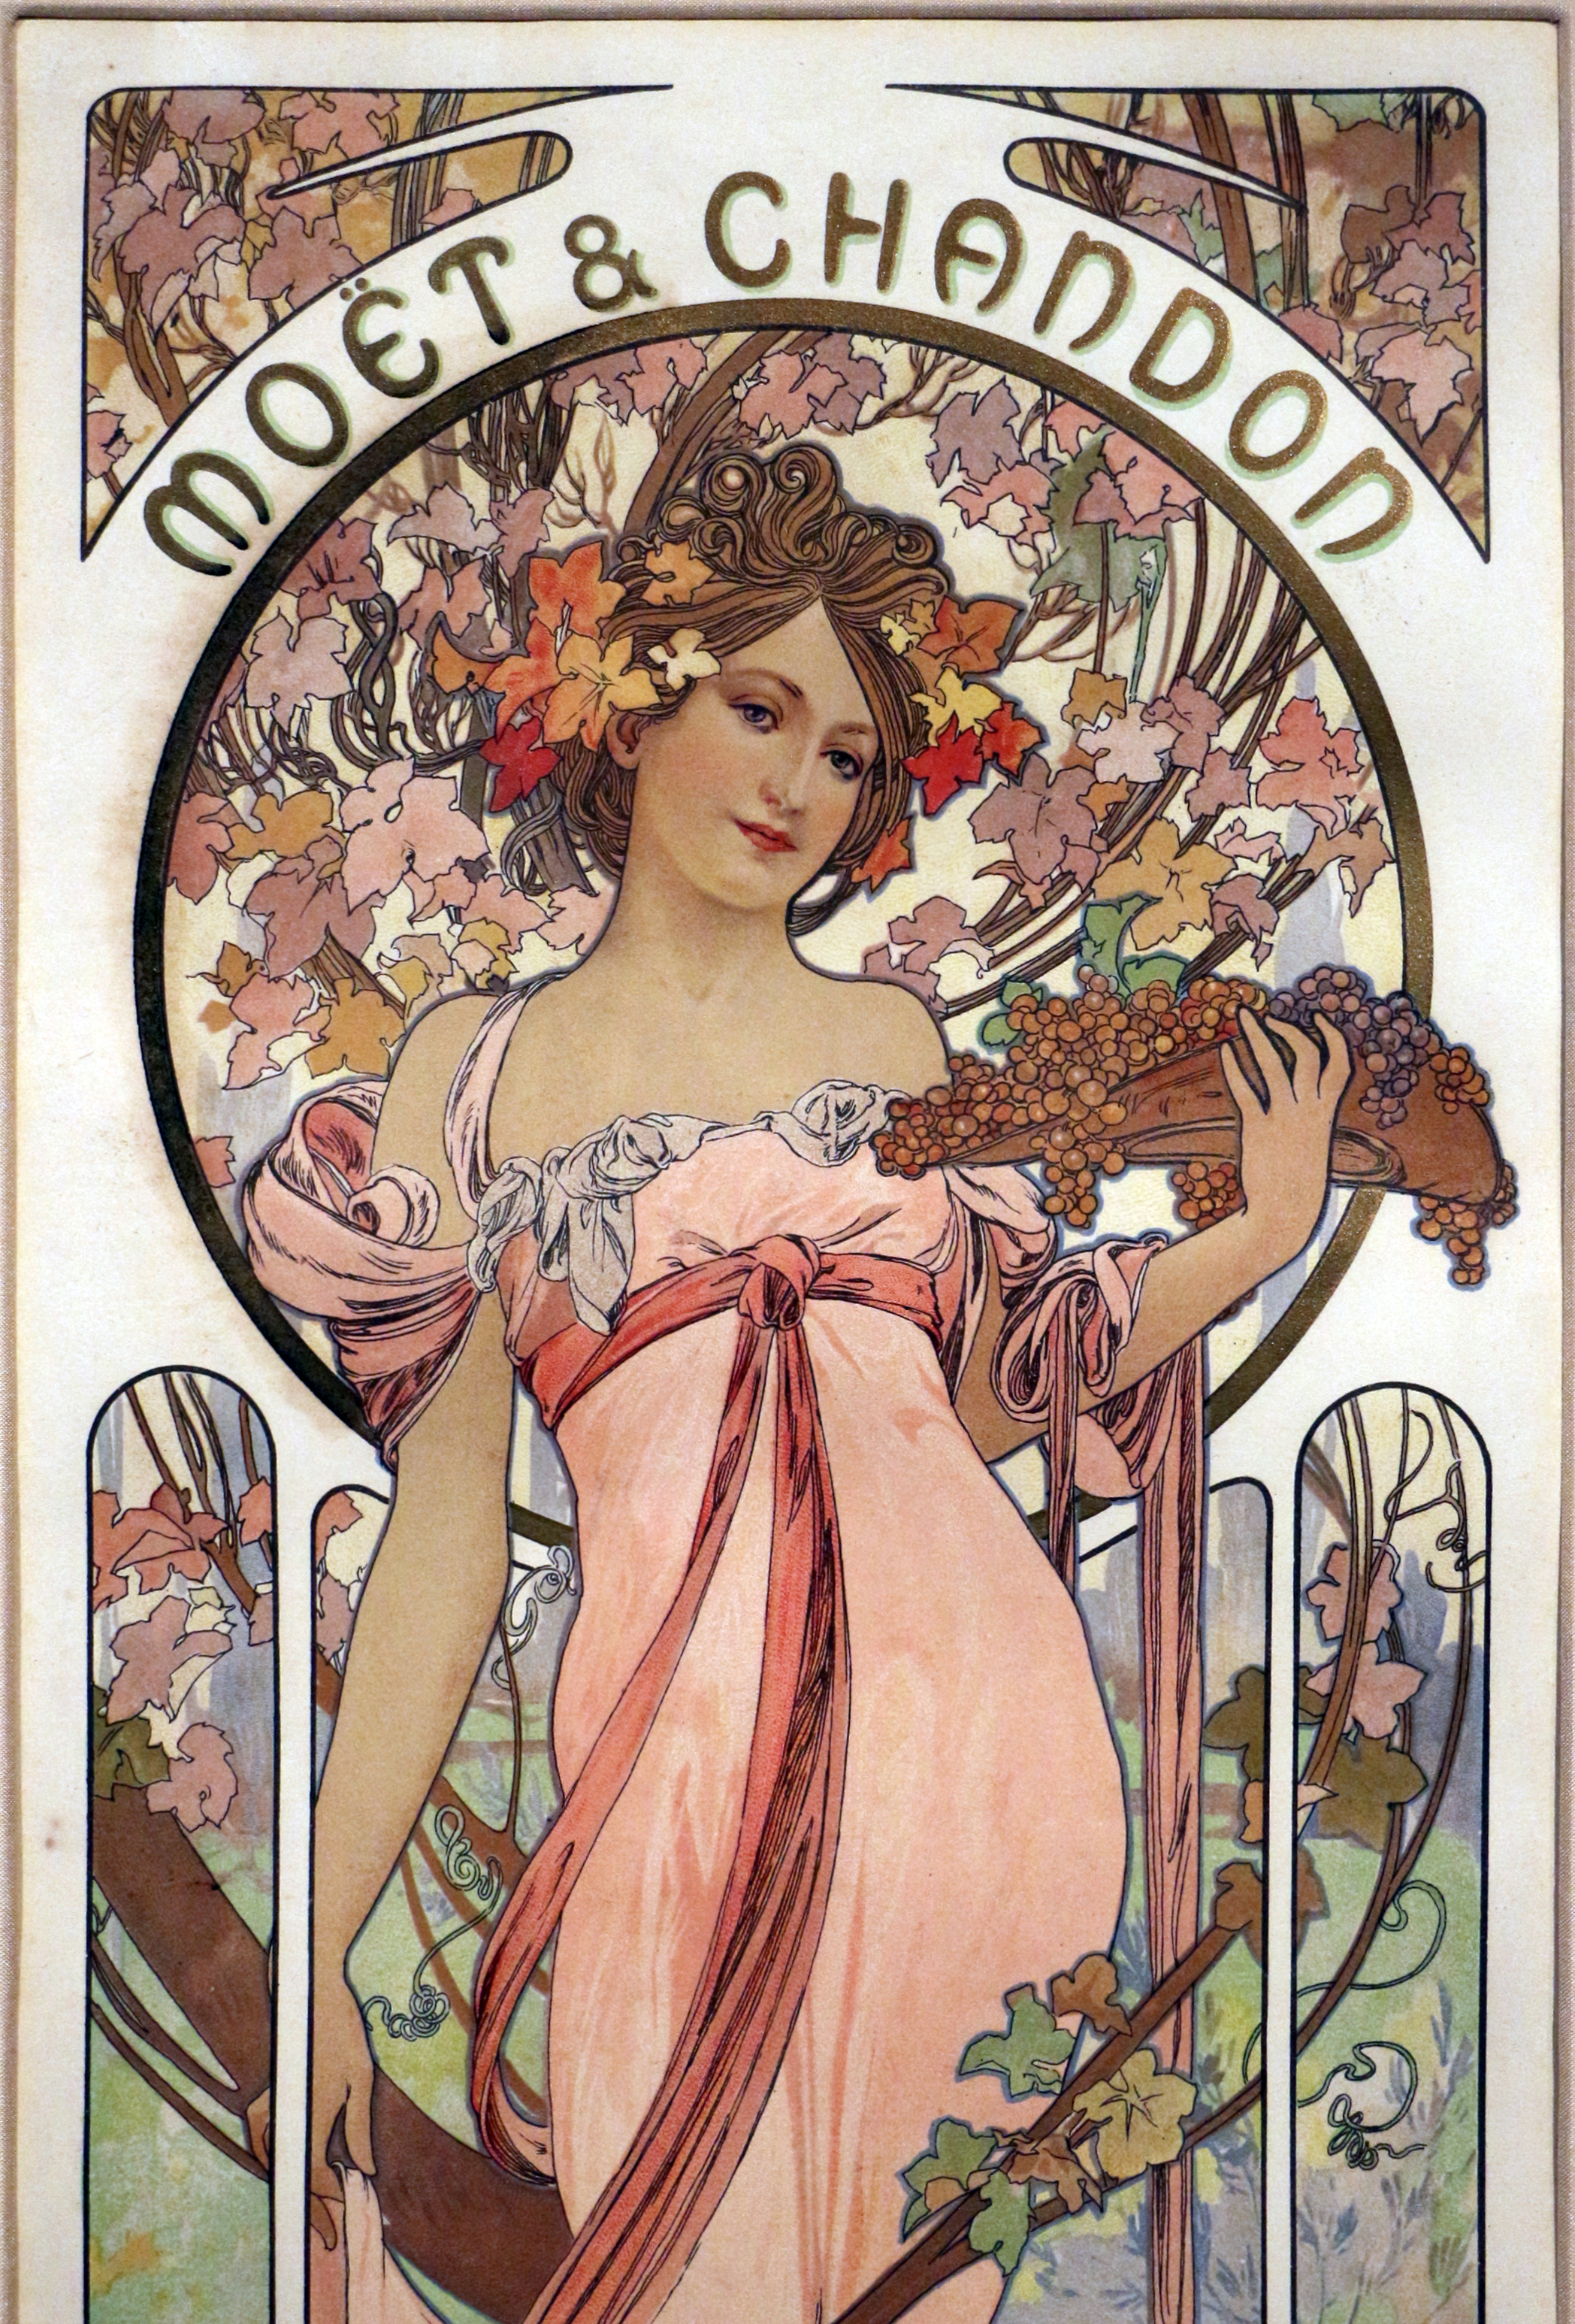 File:Alfons mucha, moët et chandon, 1899 (richard fuxa fundation ...